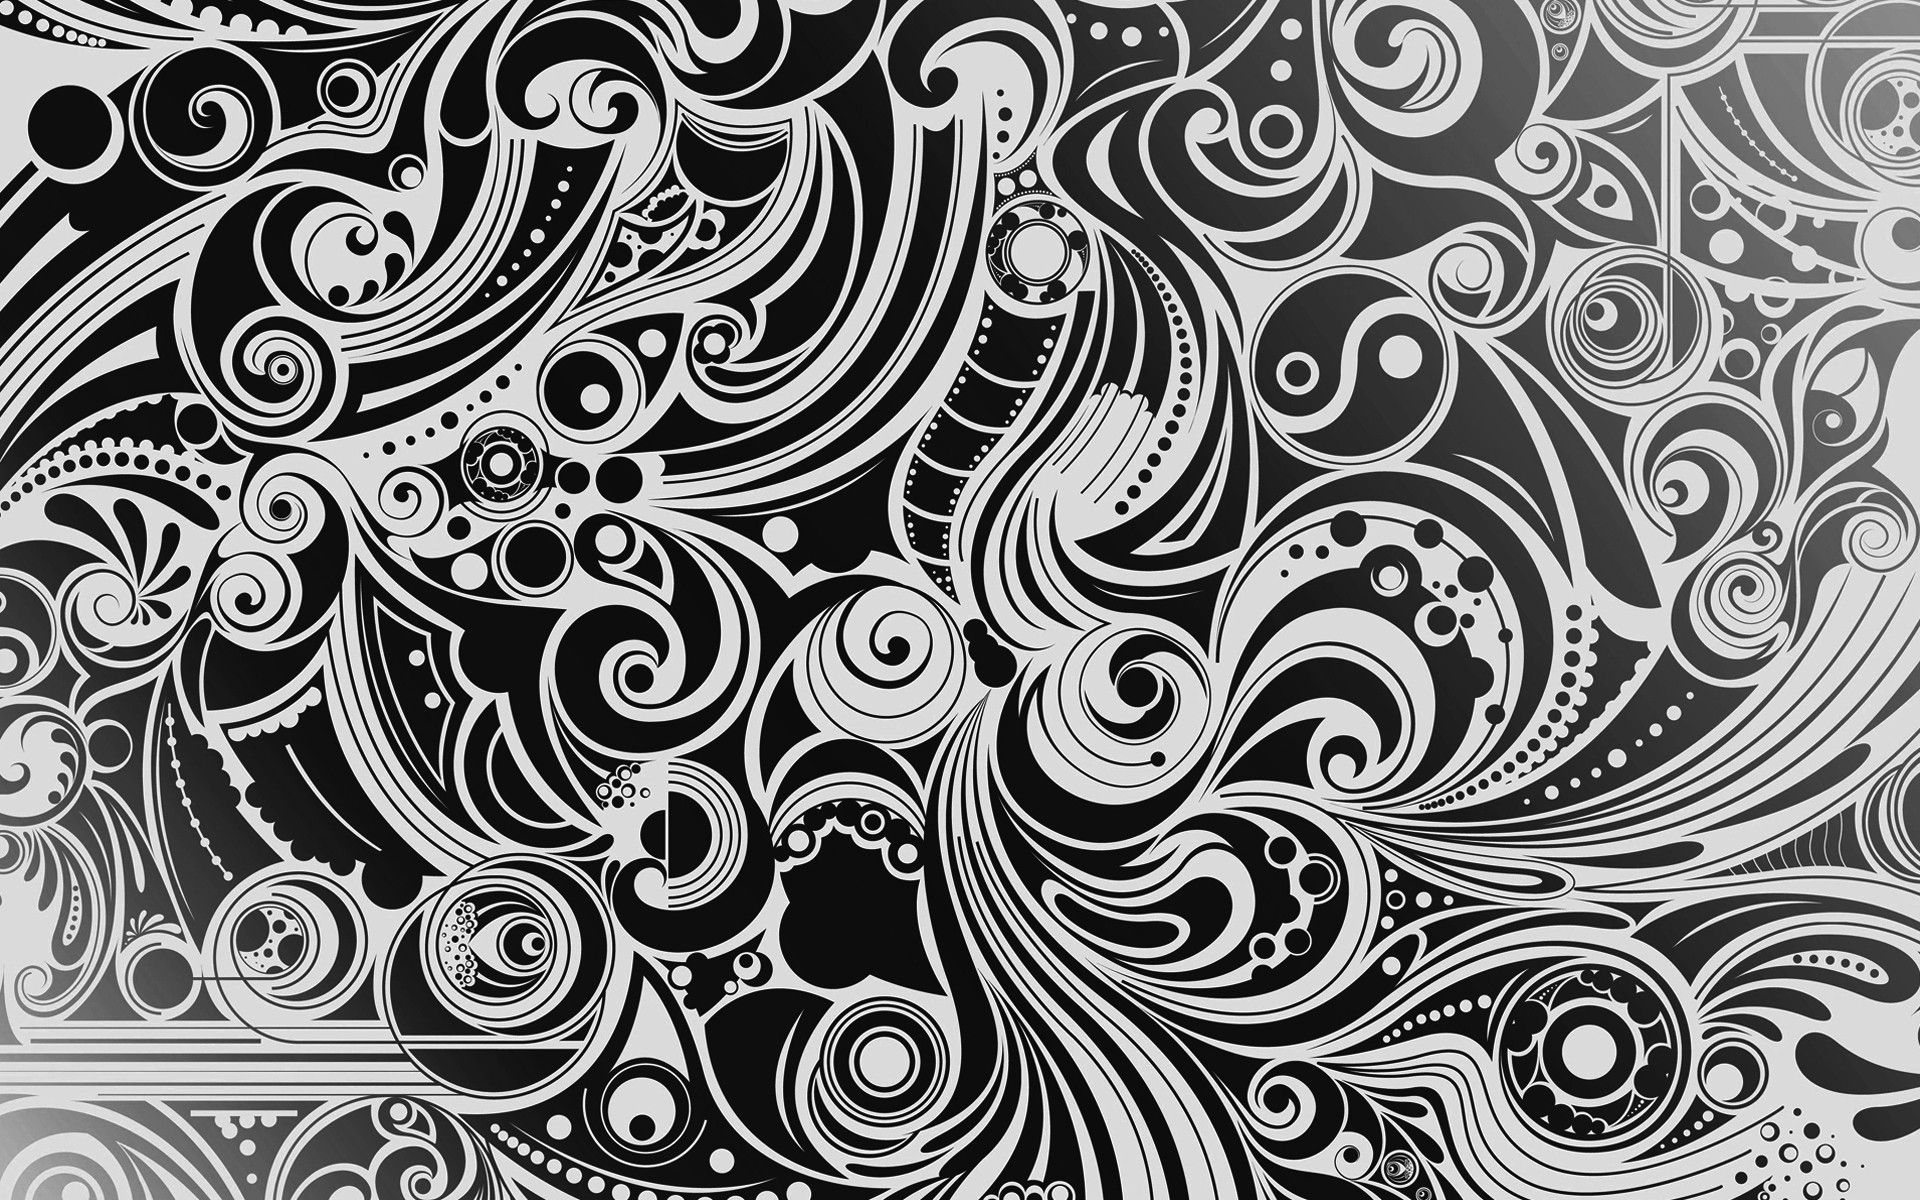 Hd wallpaper pattern - Abstract Patterns Monochrome Hd Wallpapers Jpg 1920 1200